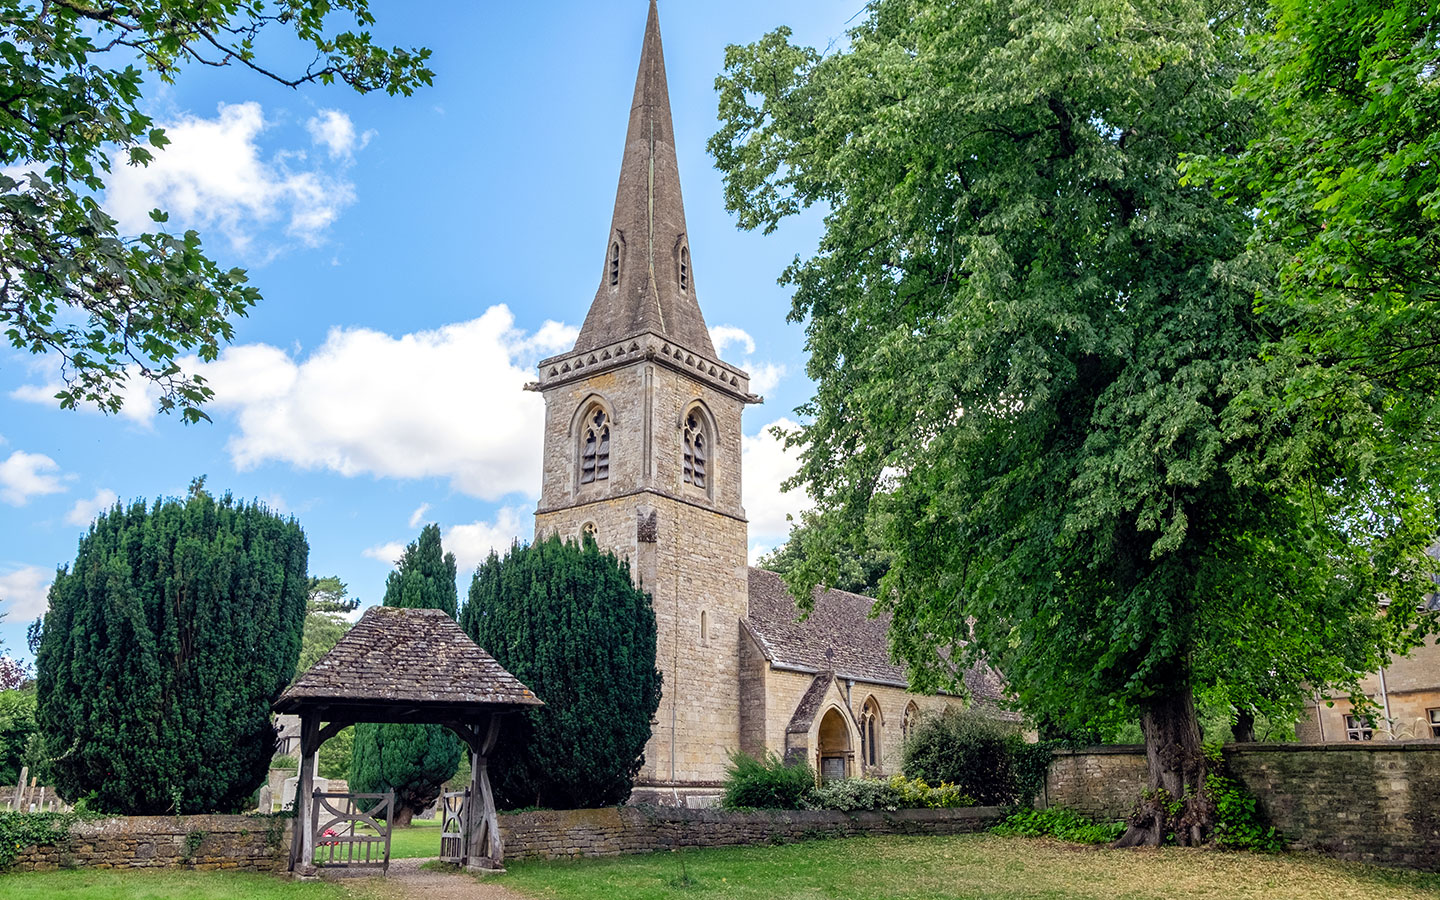 St Mary's Church in Lower Slaughter in the Cotswolds